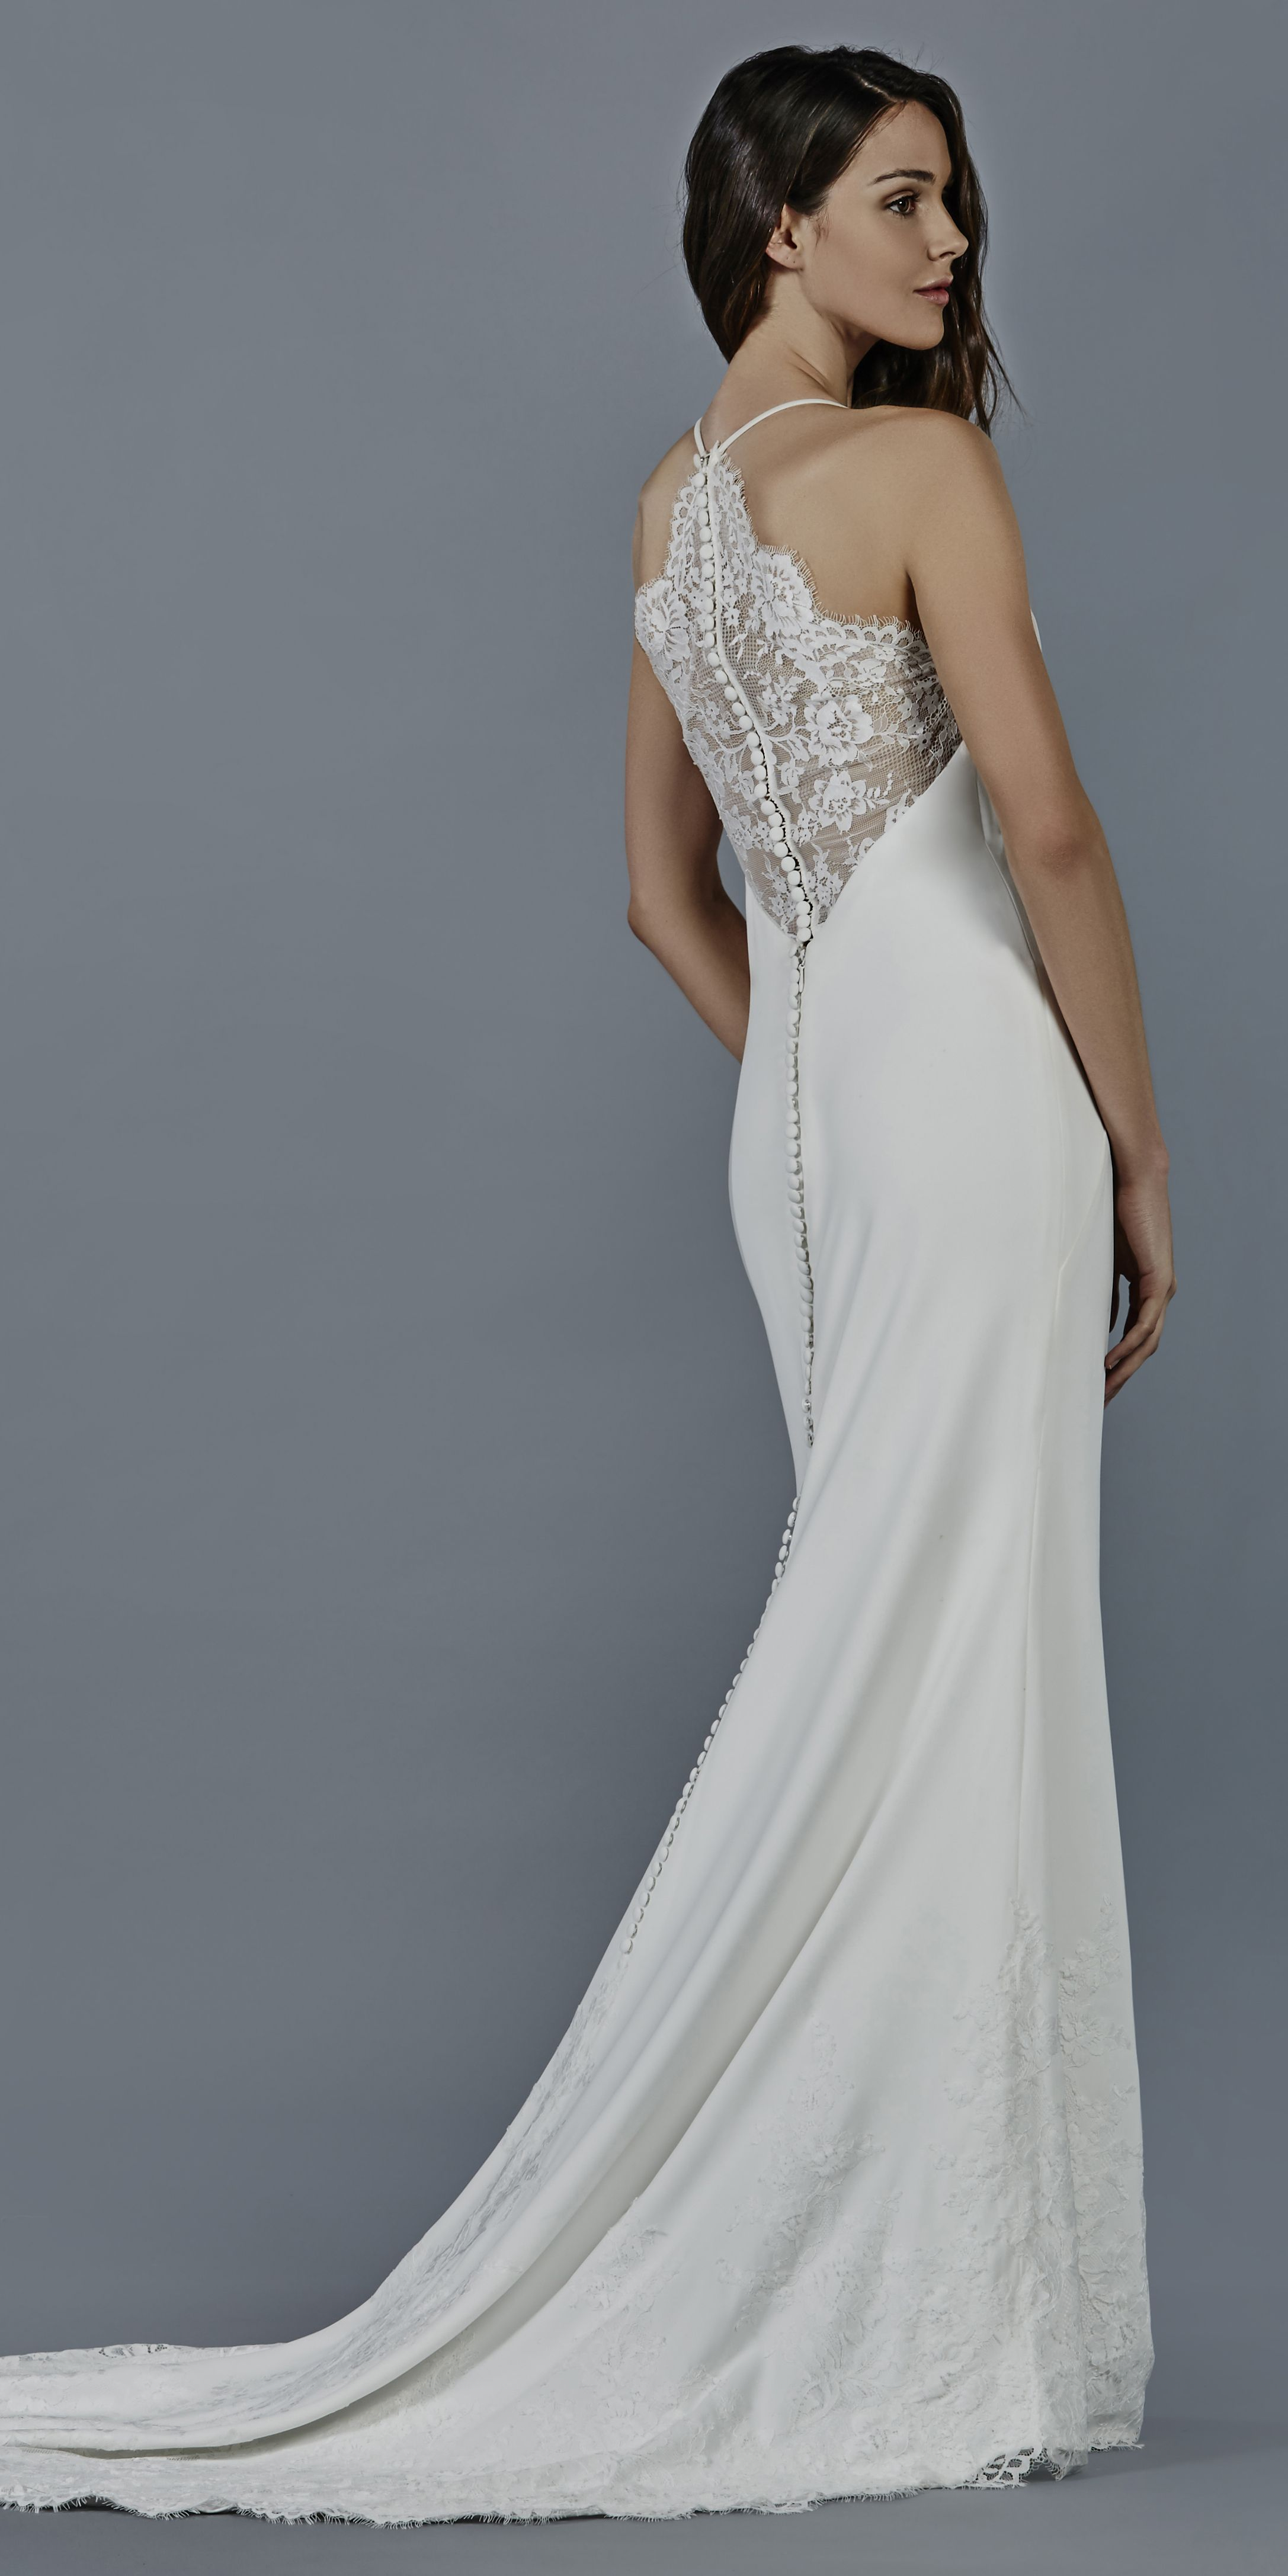 Crepe Slim Gown With Halter Neckline And Illusion Chantilly Lace